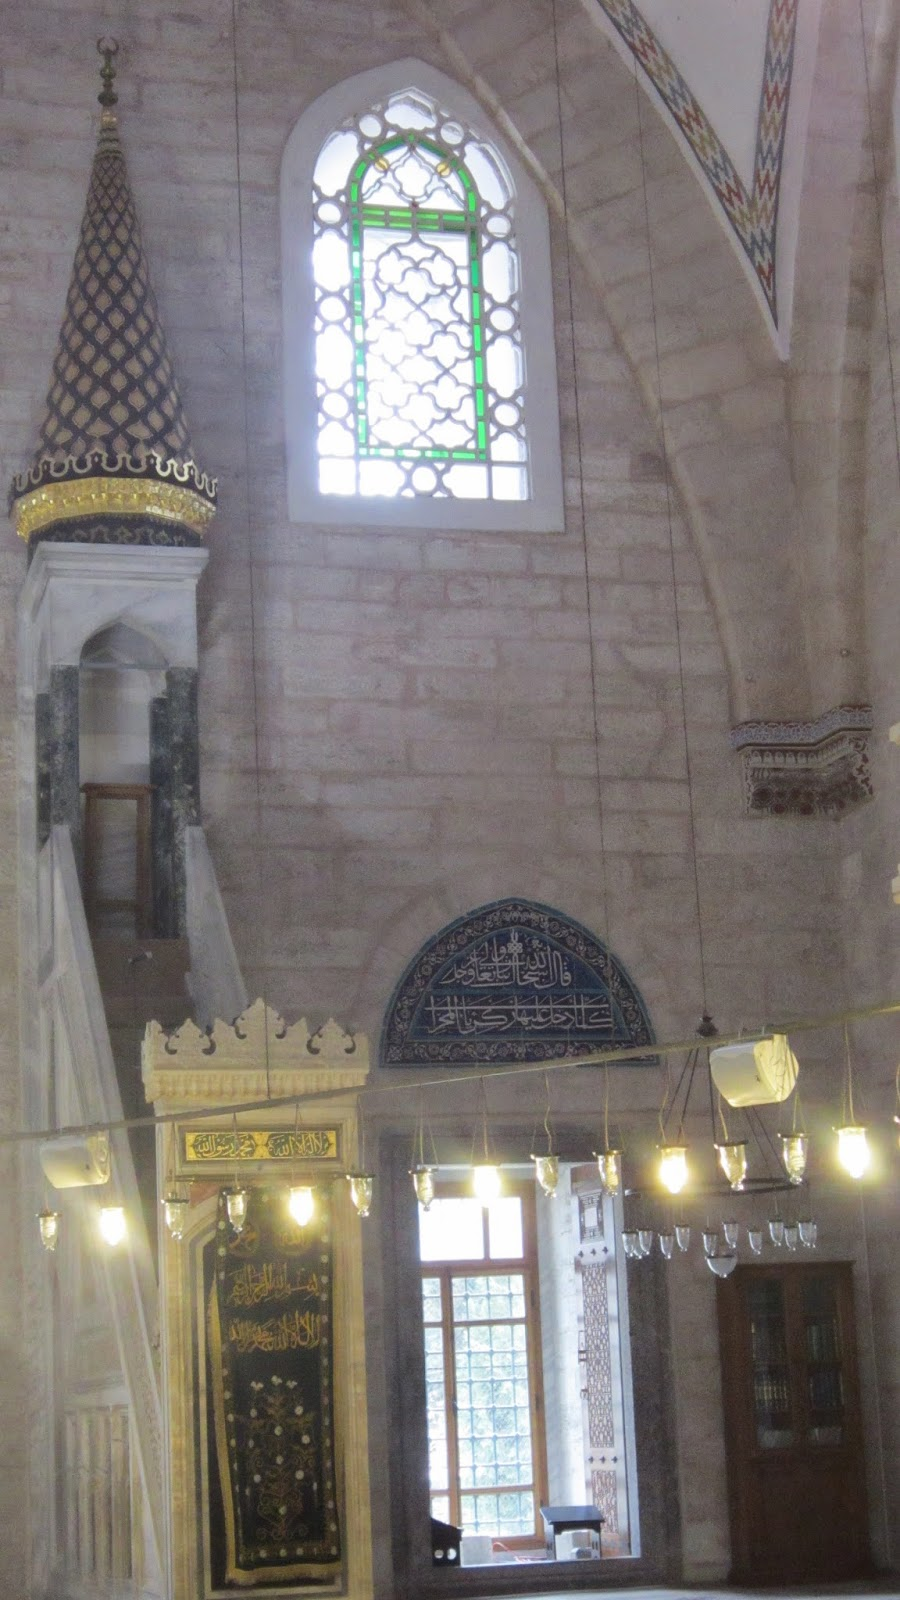 Tracing istanbul completed in 1529 the architect of the mosque is acem ali a special shroud from mecca hangs on the wall facing qibla built as a an ottoman social complex thecheapjerseys